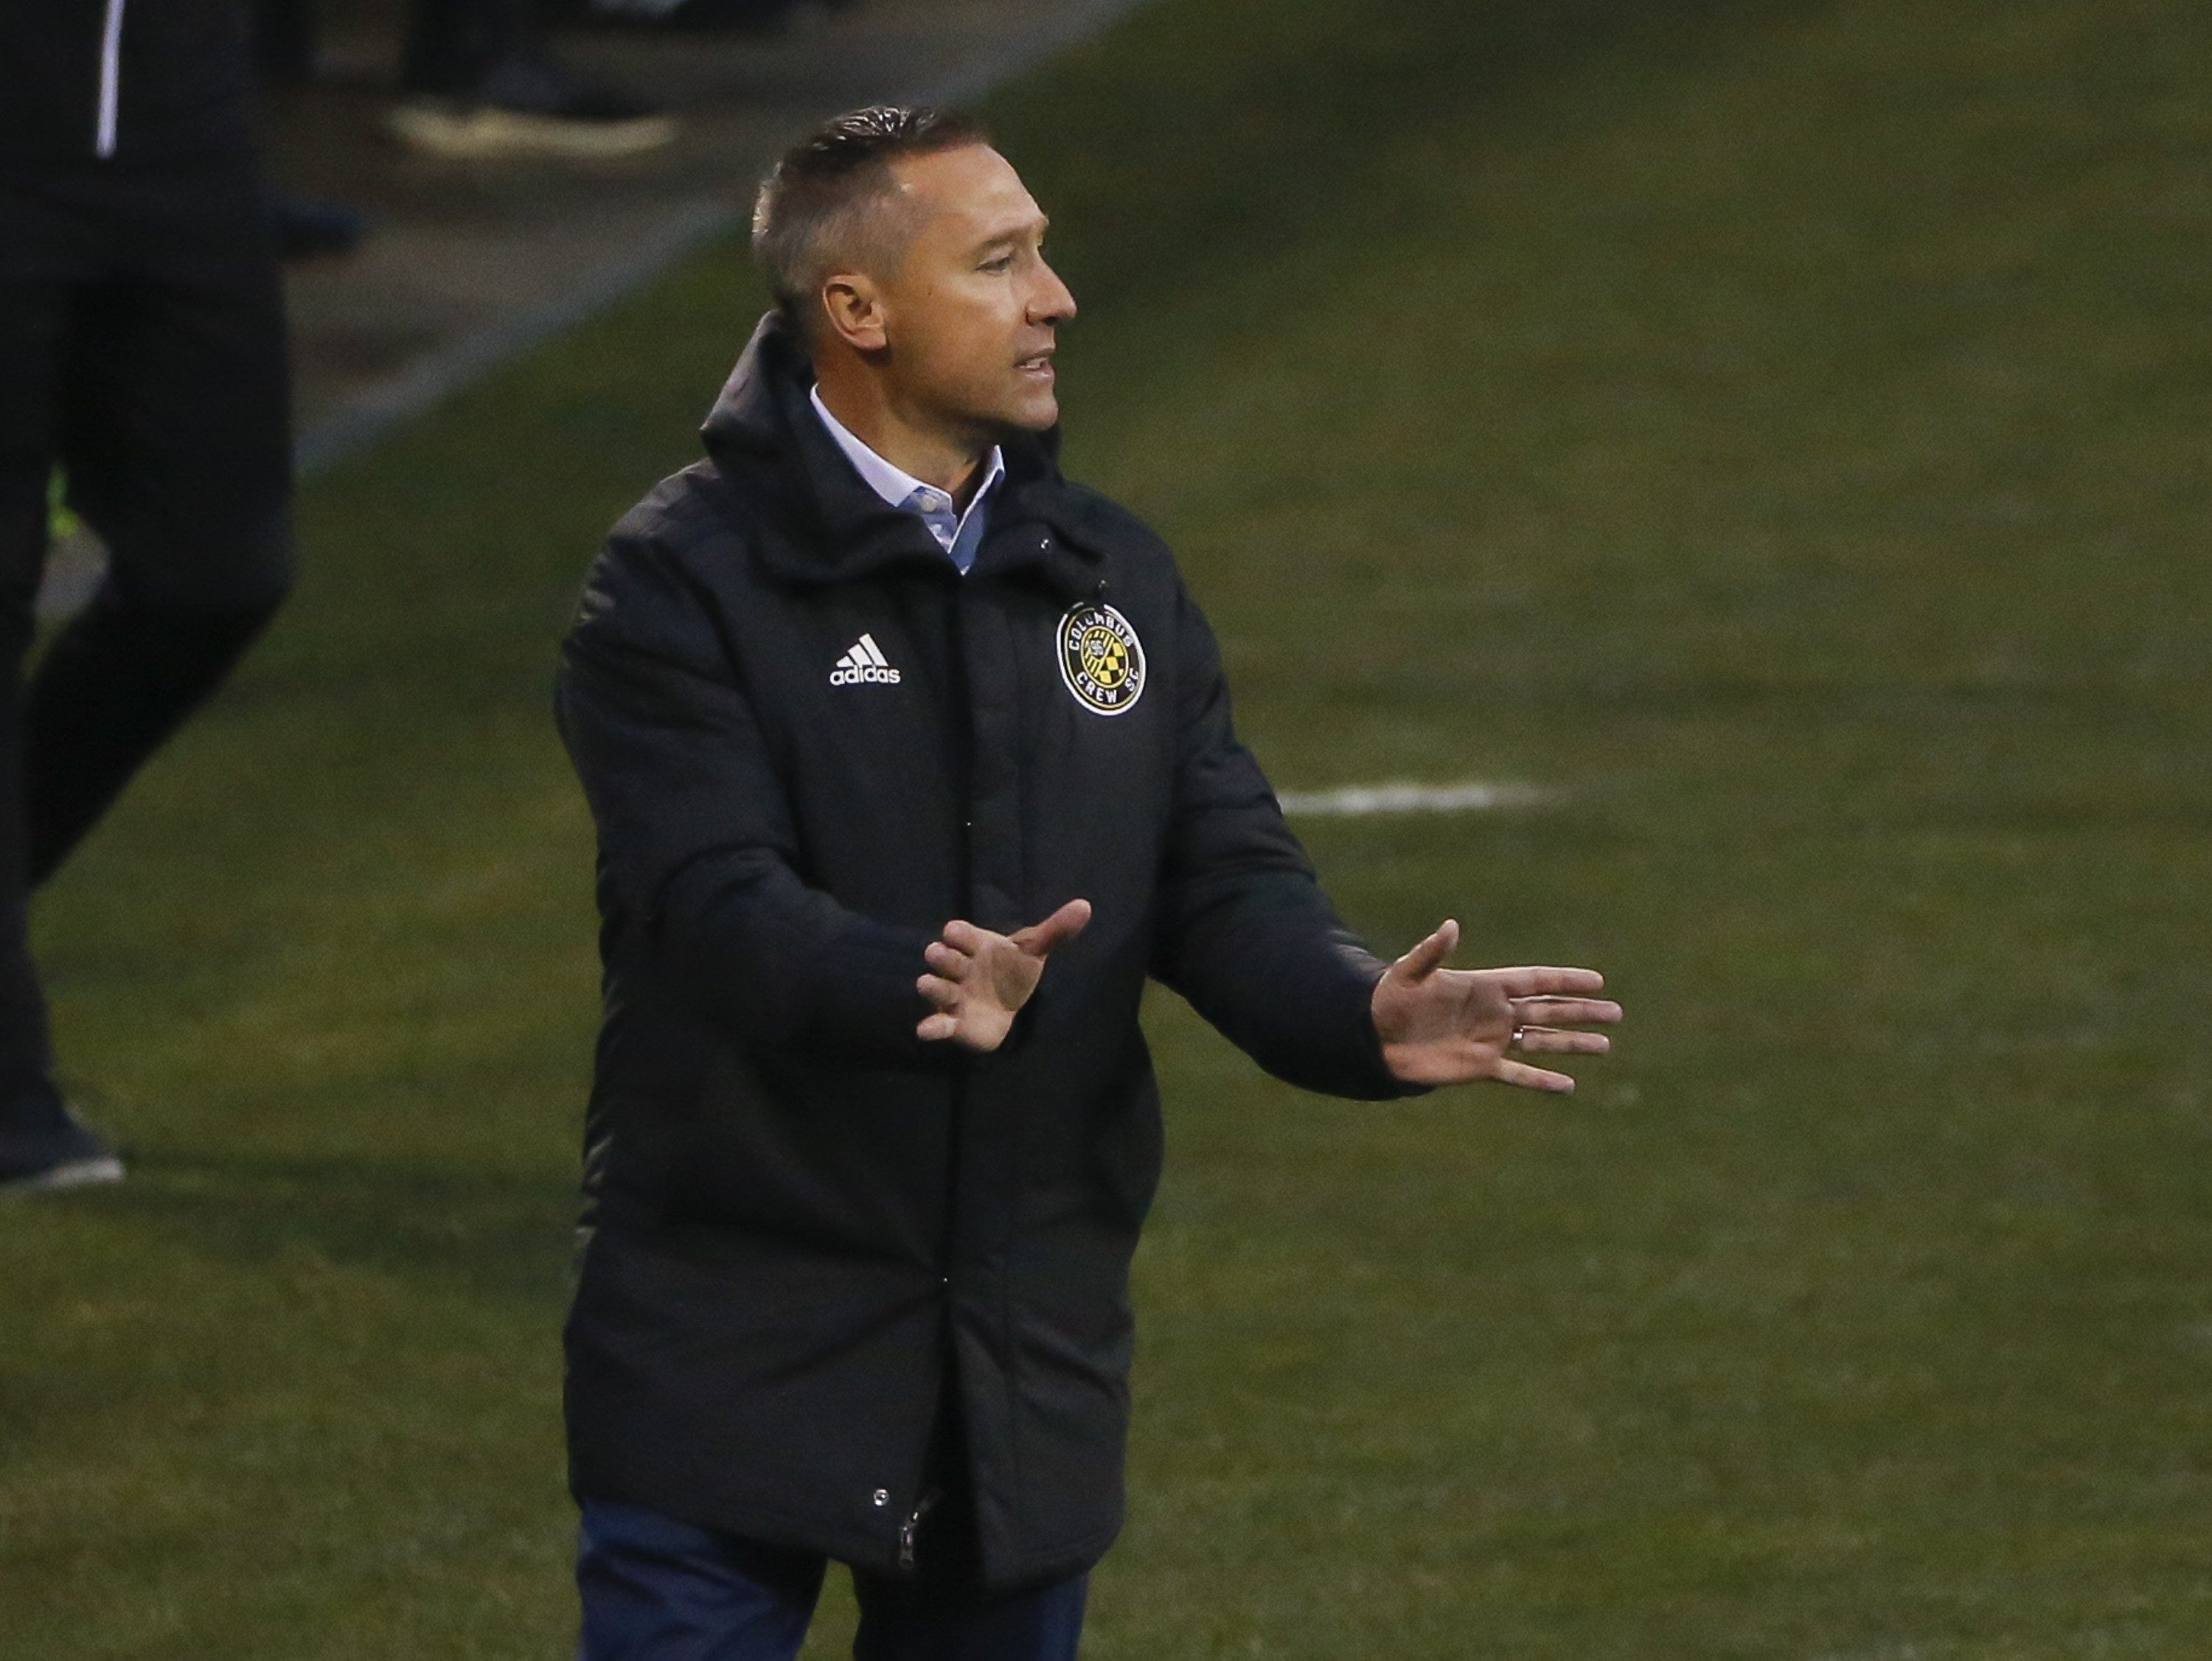 Crew's Caleb Porter says players with COVID-19 'feeling good,' some may return this week